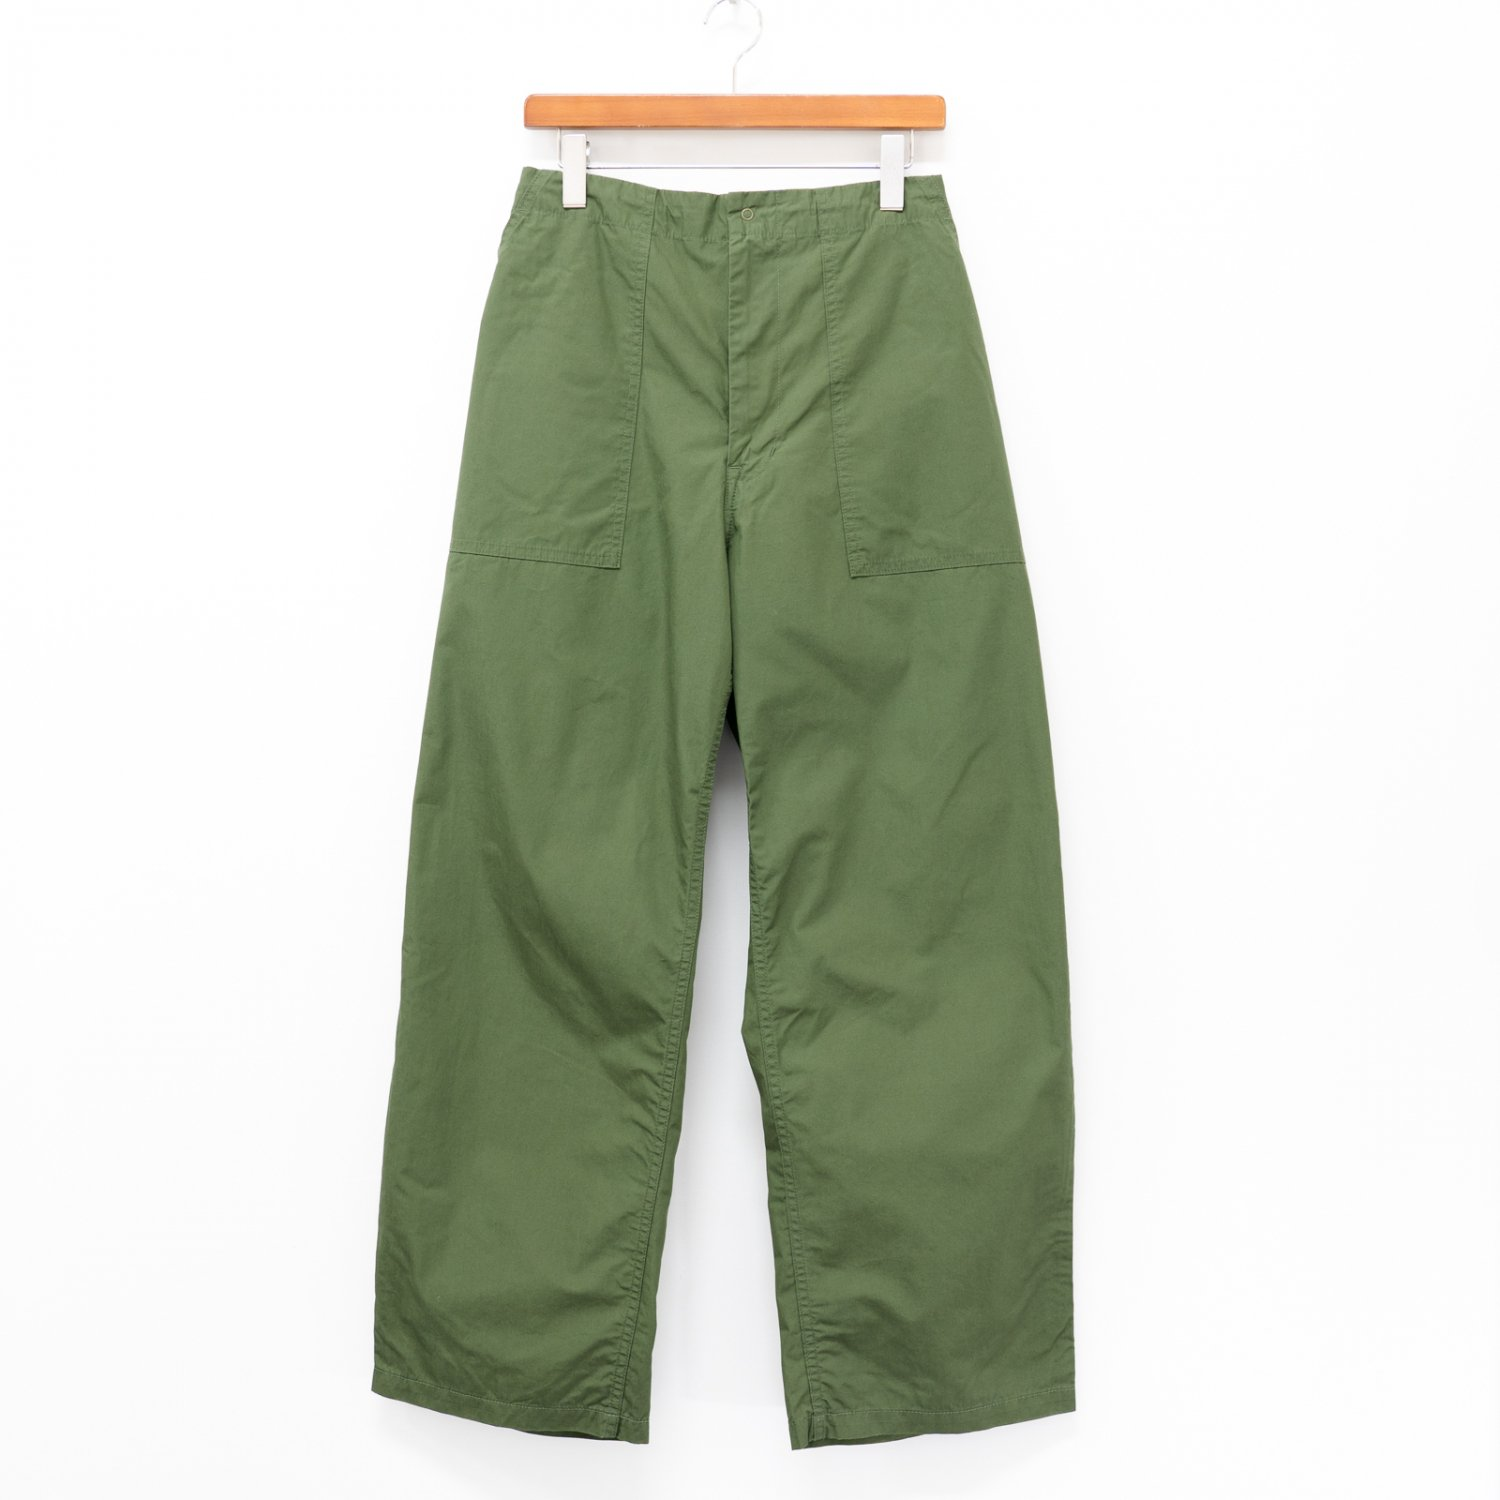 FreshService * Easy Work Pants * Khaki